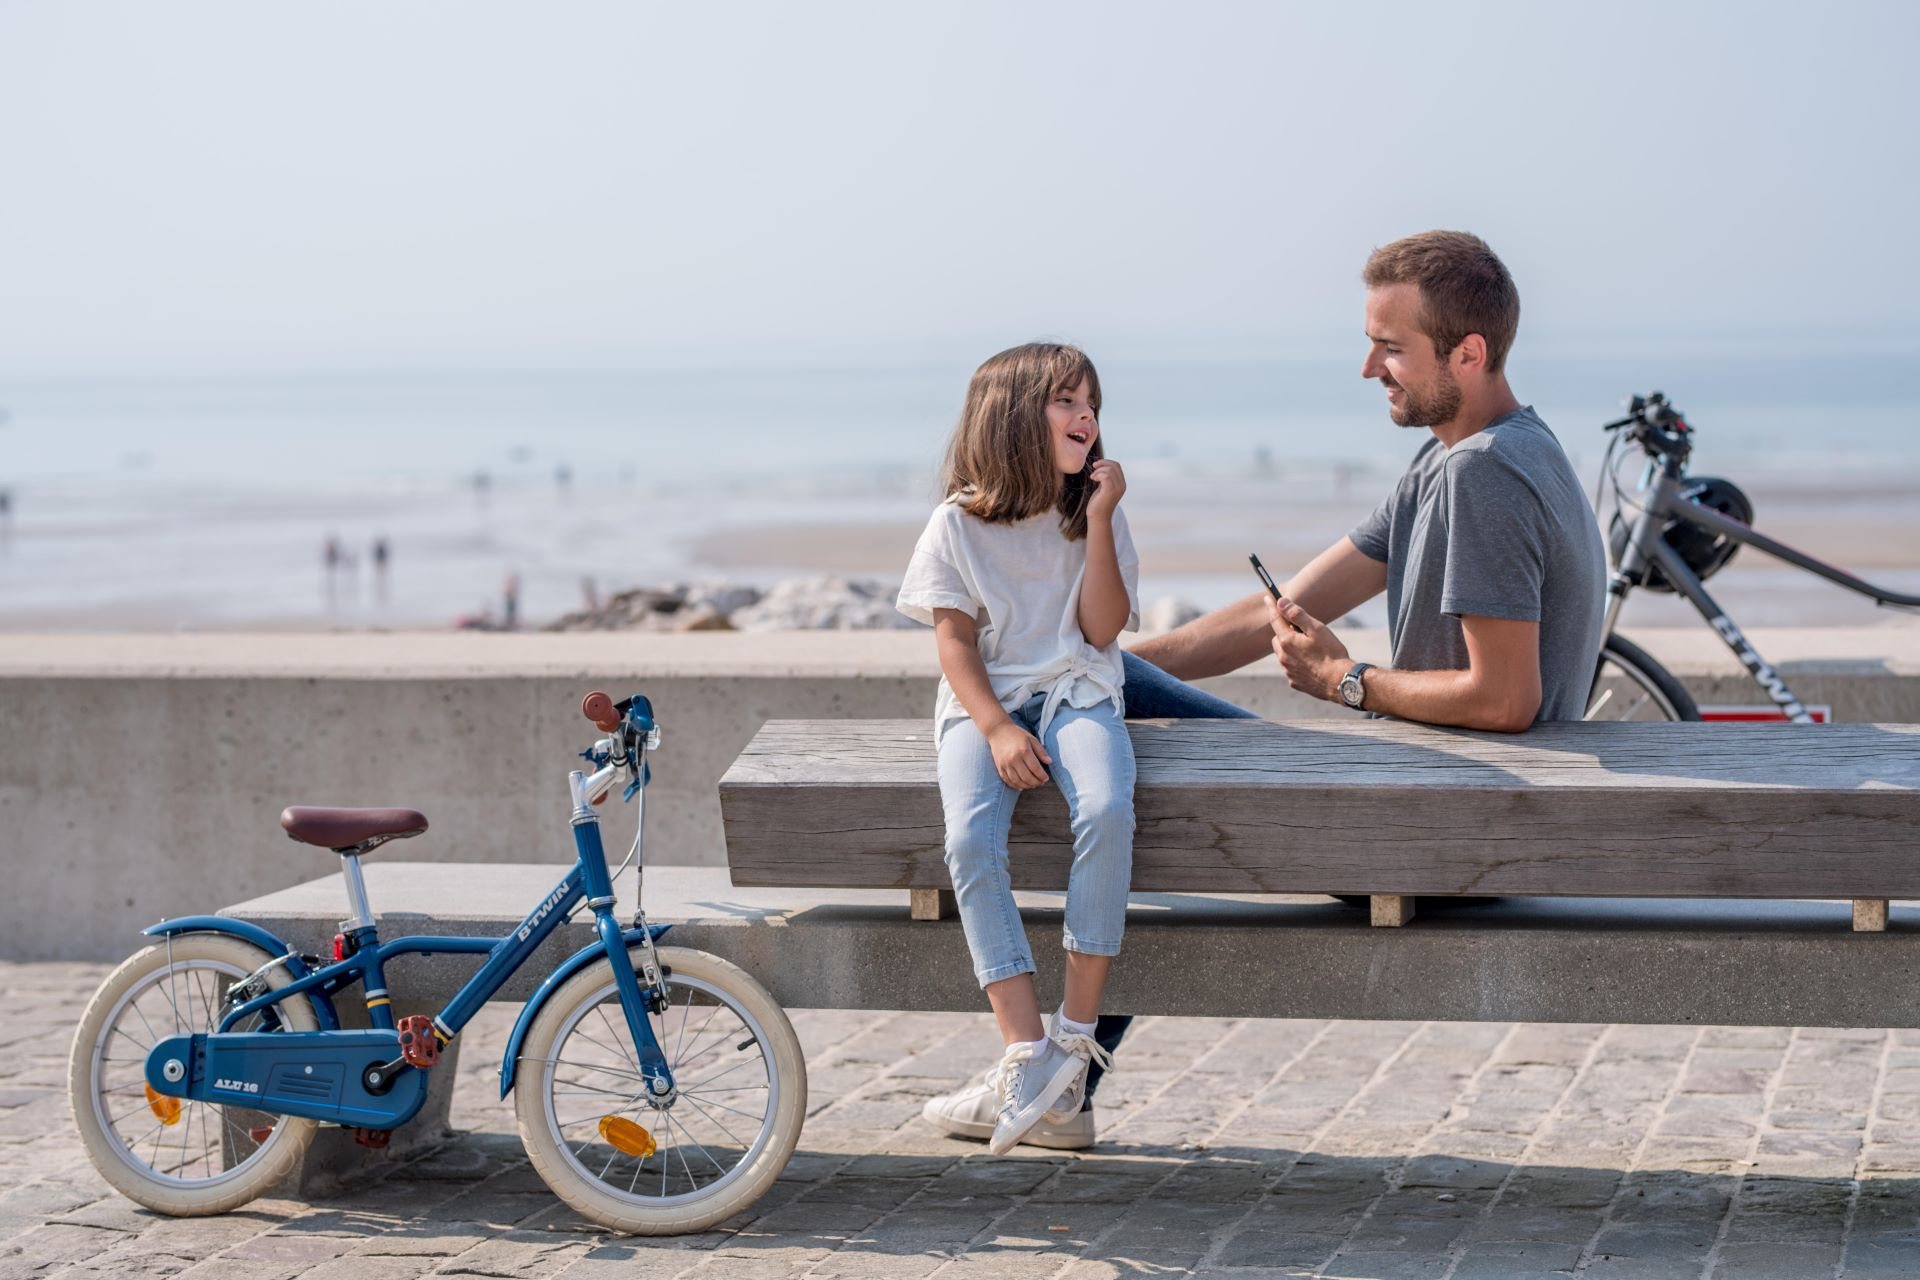 Summer Cycling Activities For Kids - Cycling By The Coast To The Beach